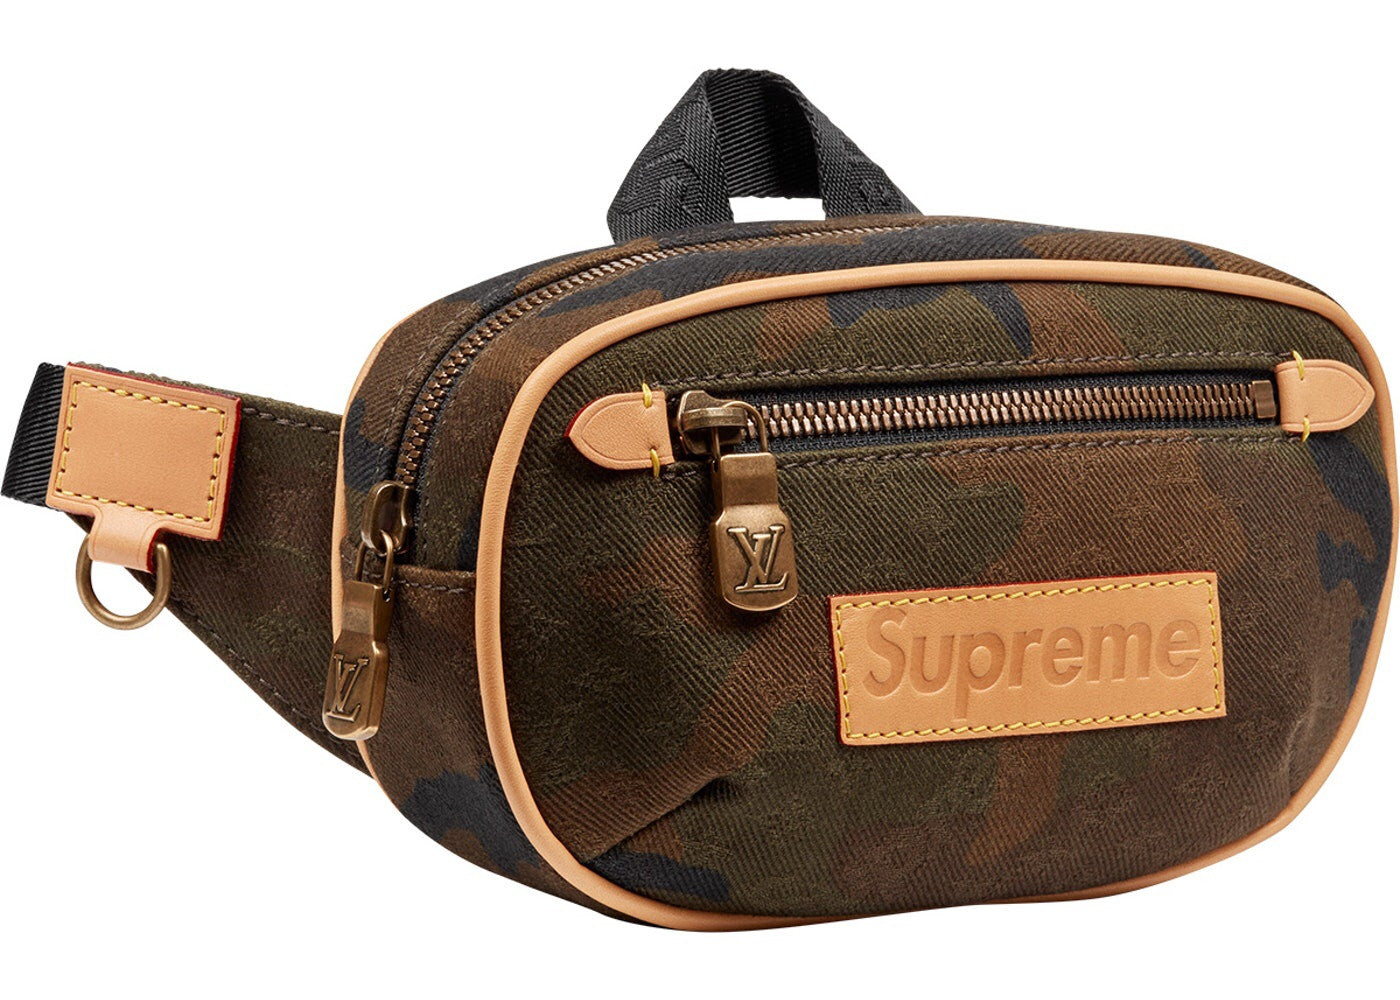 c3db455134d5 Supreme x Louis Vuitton Camo Bum Bag Monogram PM – Street Sole